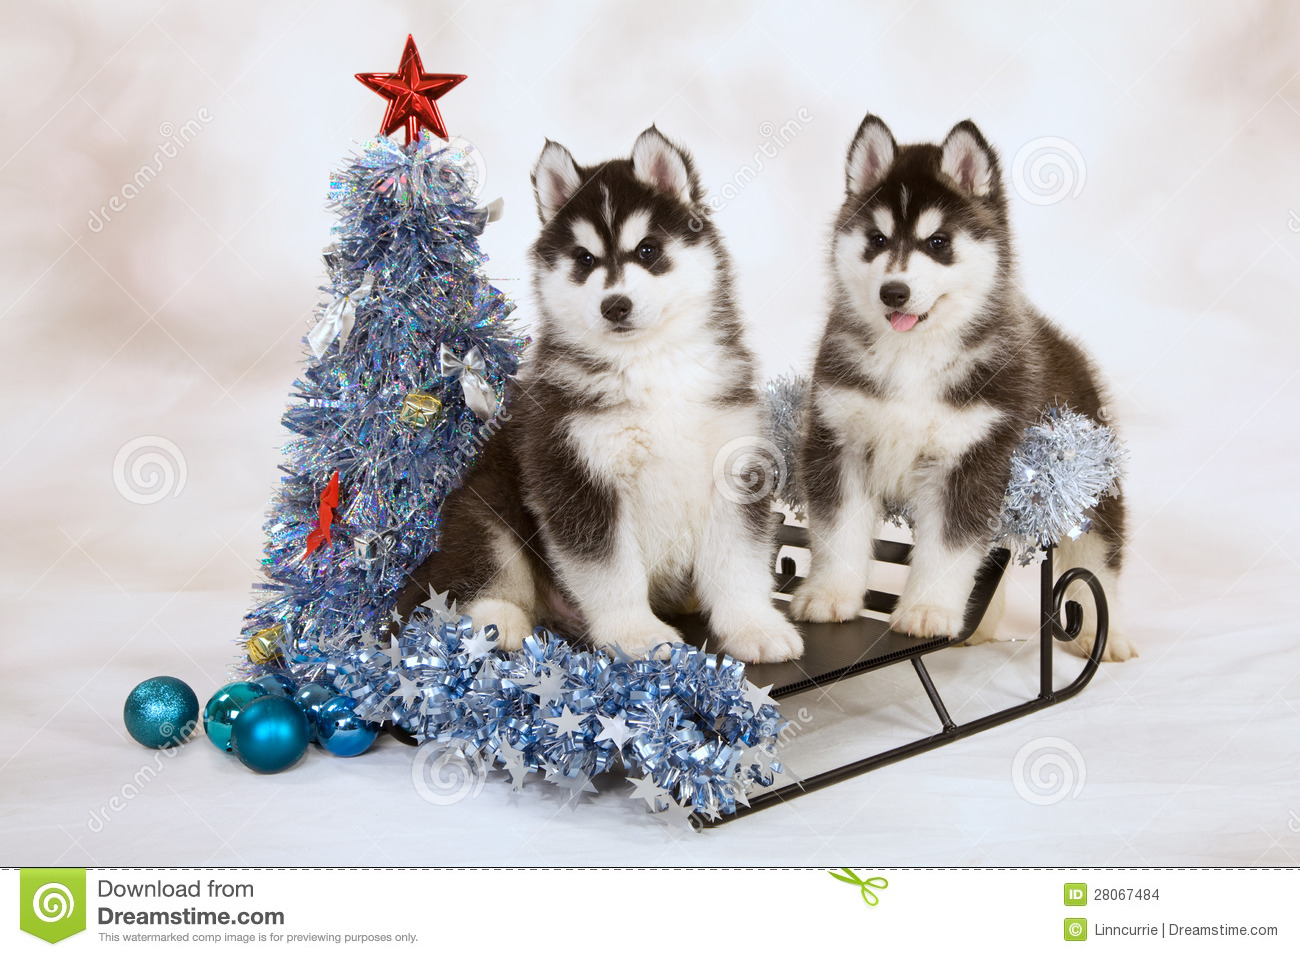 Cute Merry Christmas Wallpaper Dogs Siberian Husky Puppies Stock Photo Image Of Present